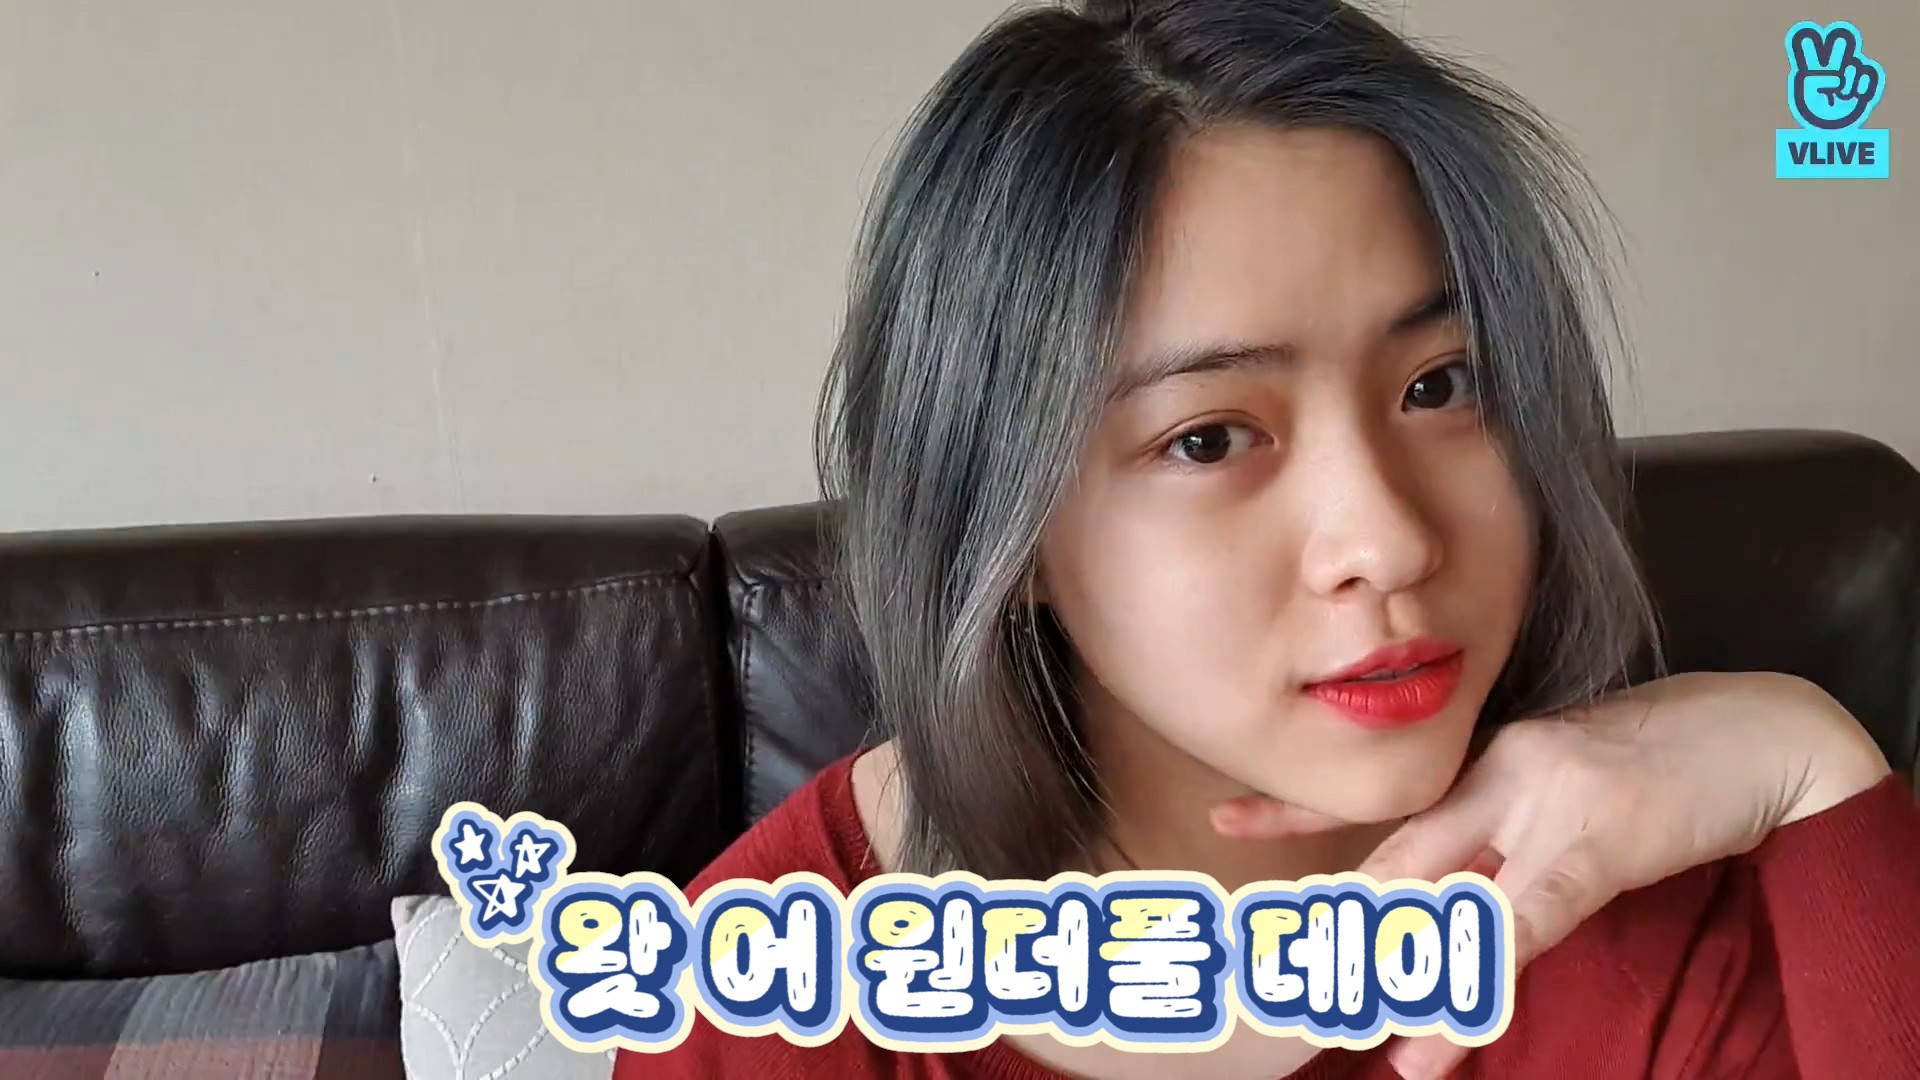 [ITZY] 있둥이 장점은 외핵을 잉크 삼아 맨틀에 적어도 모자라지‼️ (RYUJIN talking about ITZY's Advantages)